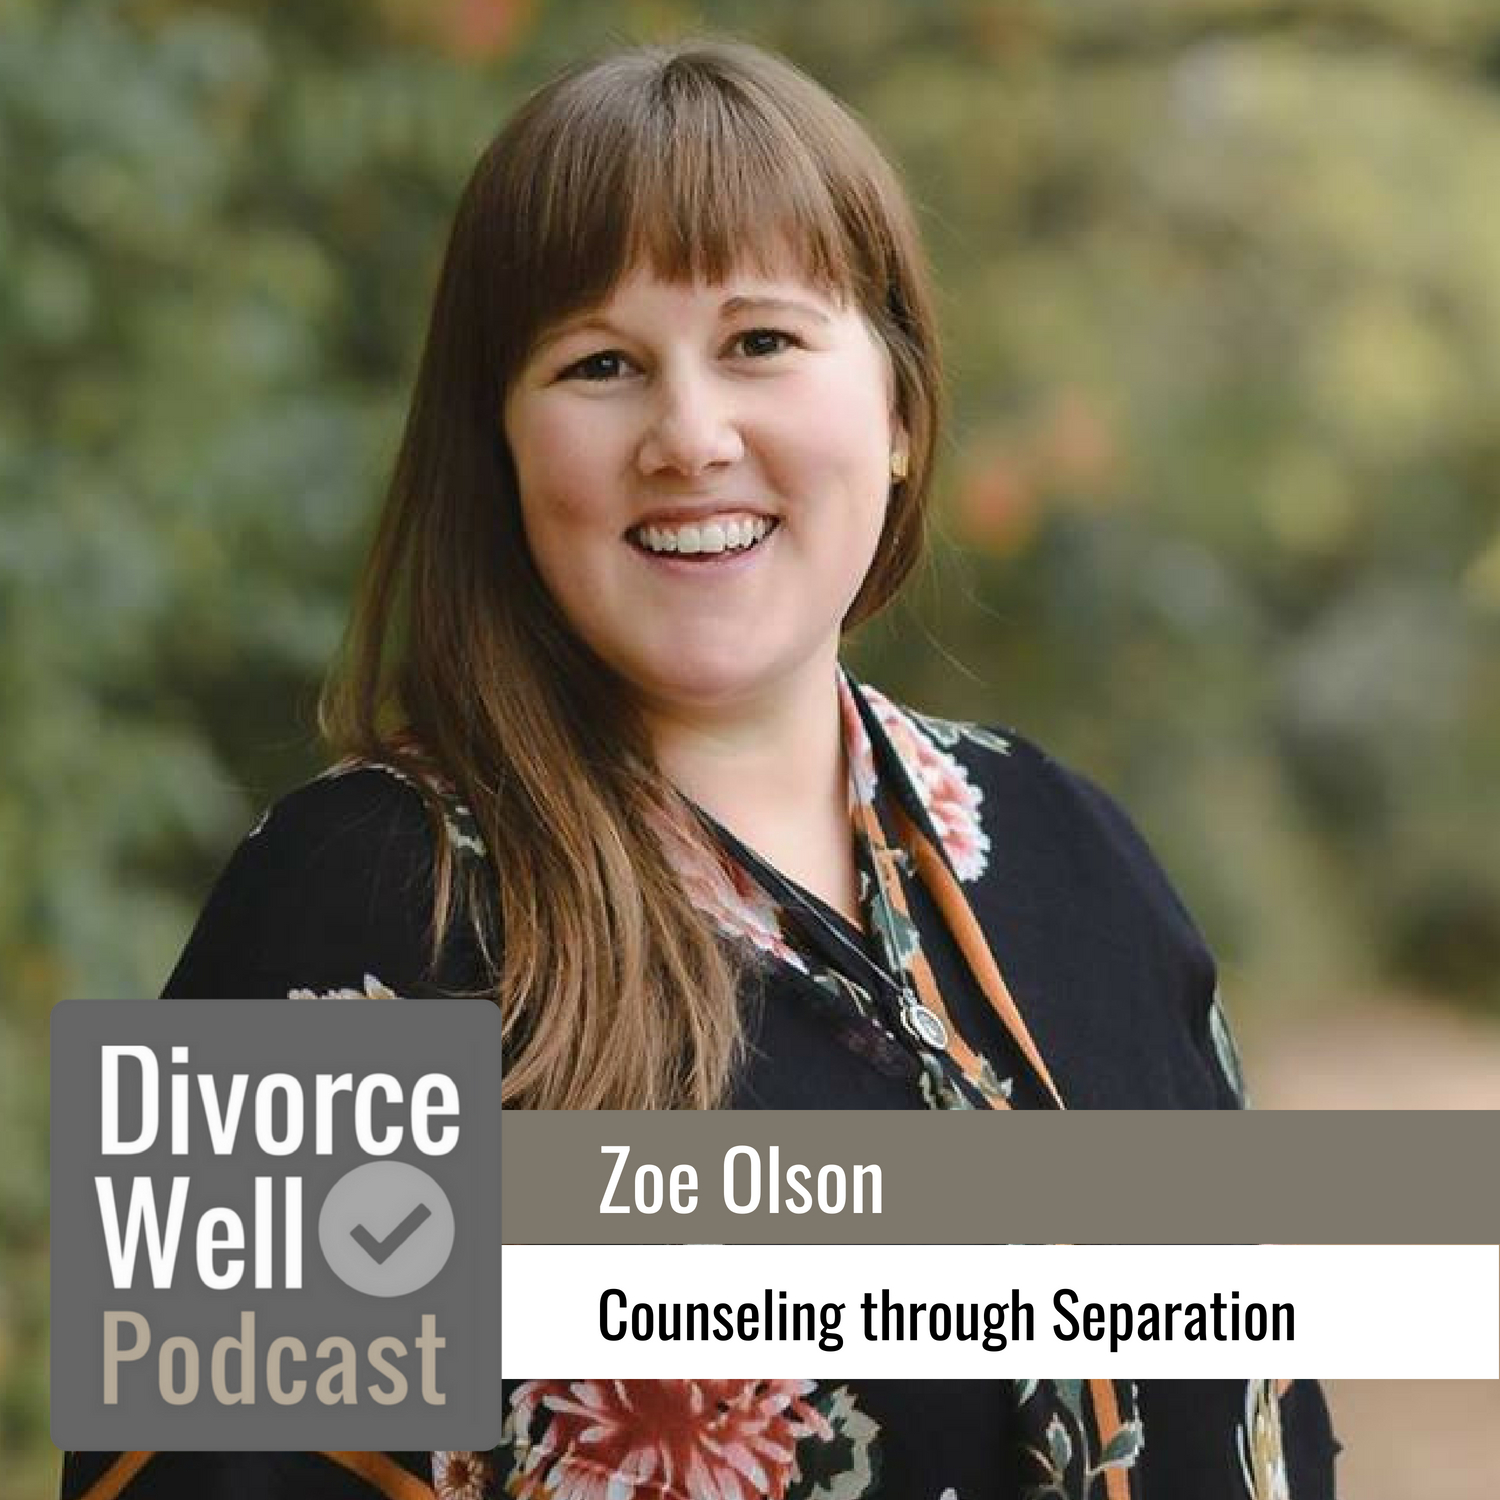 Zoe Olson on the Divorce Well Podcast about counseling to help with separation